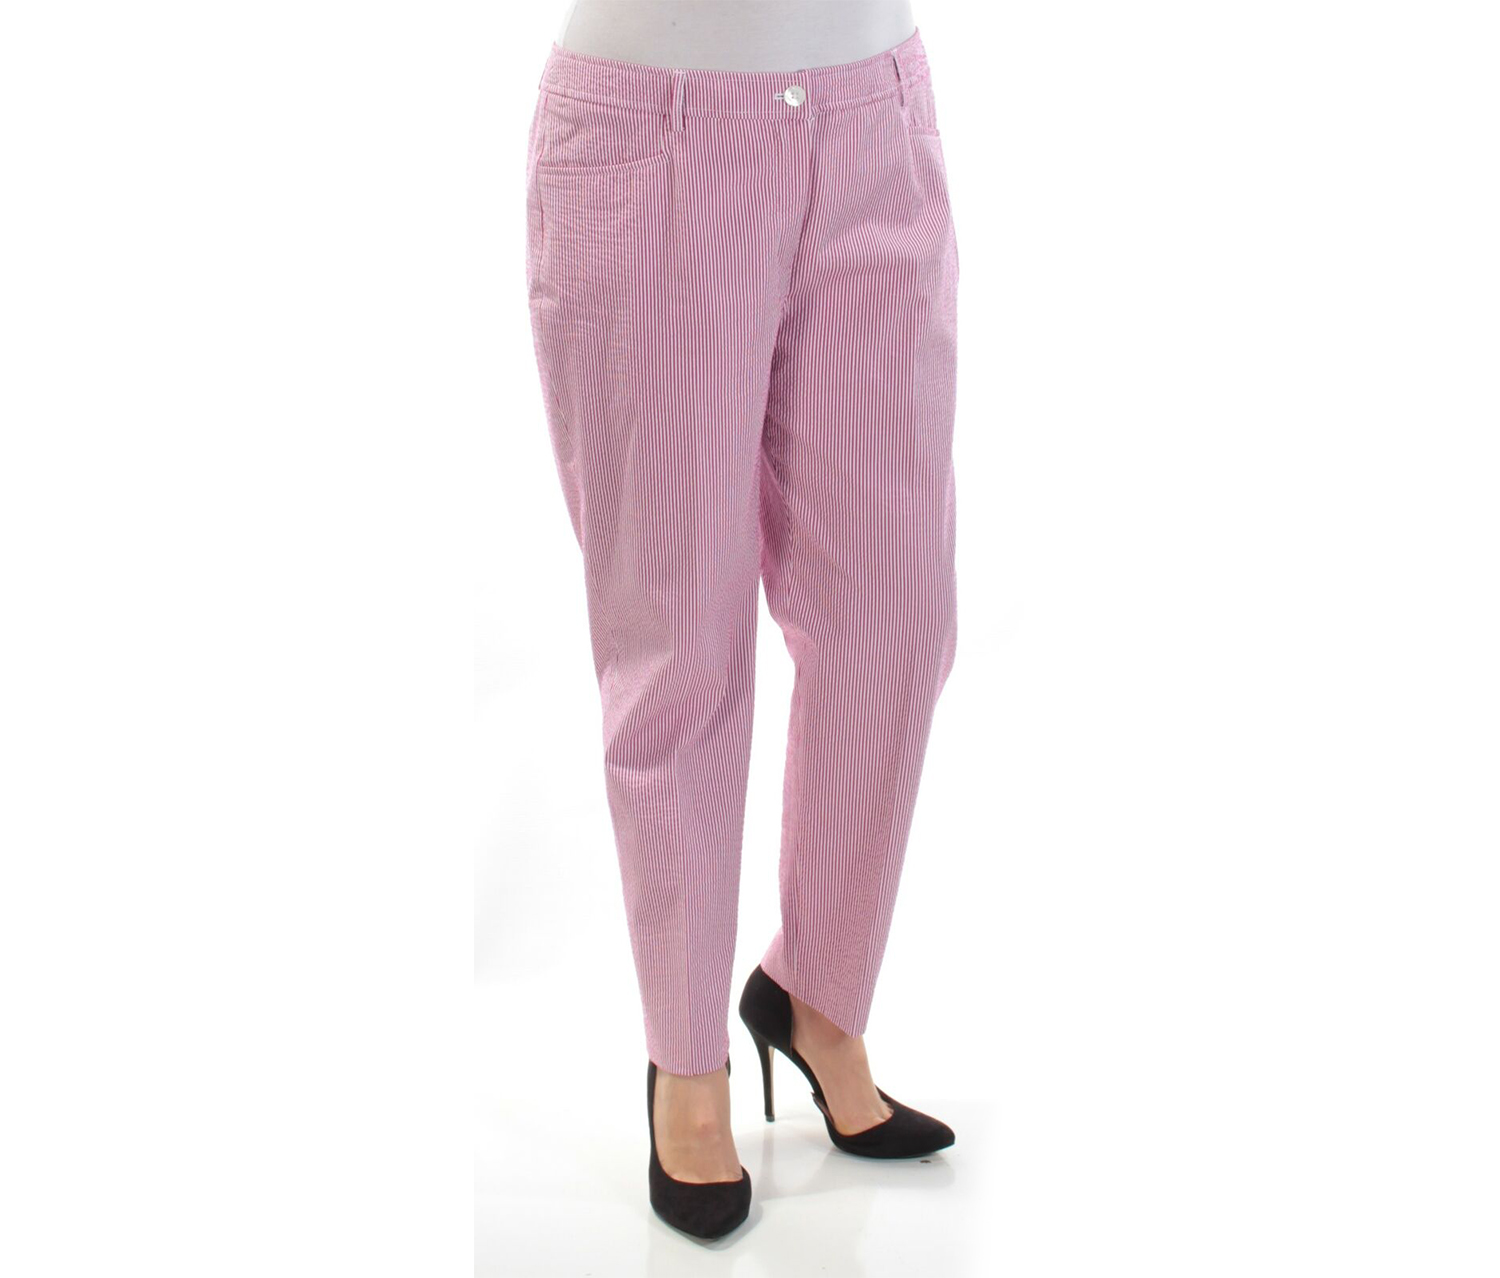 Anne Klein Women's Striped Seersucker Cropped Pants, Pink